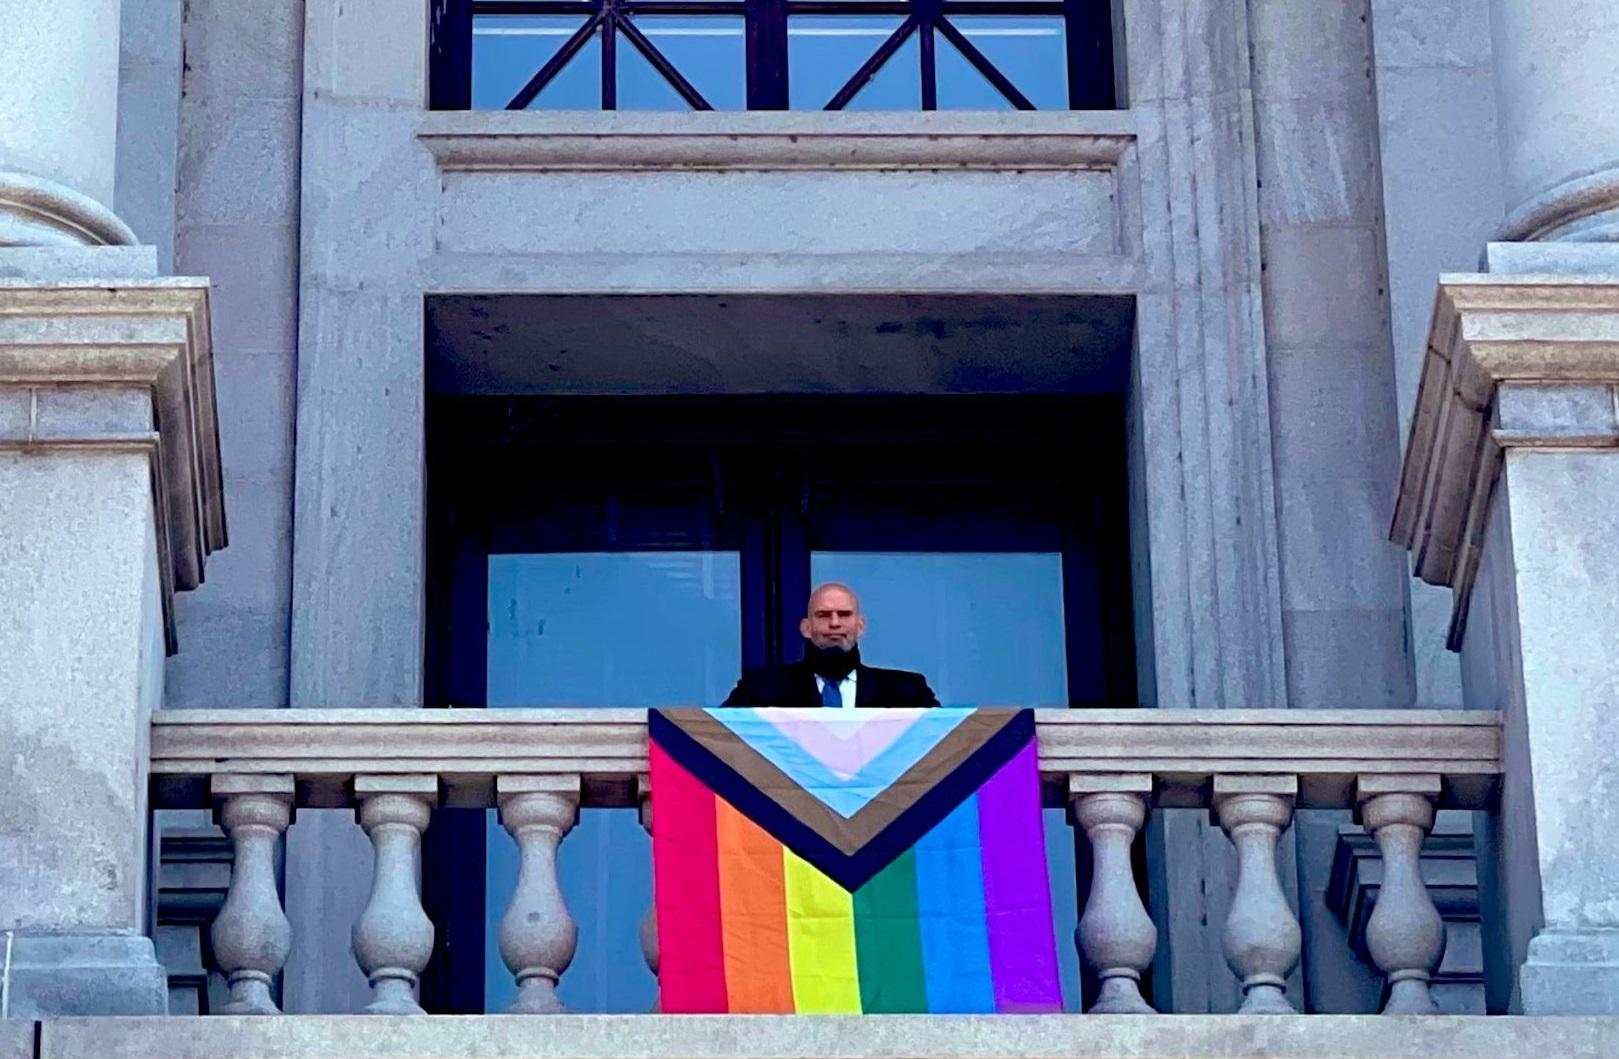 Pa. Lt. Gov. John Fetterman poses with a Pride flag outside his office at the state Capitol on Tuesday, June 1, 2021. (Source: @JohnFetterman)